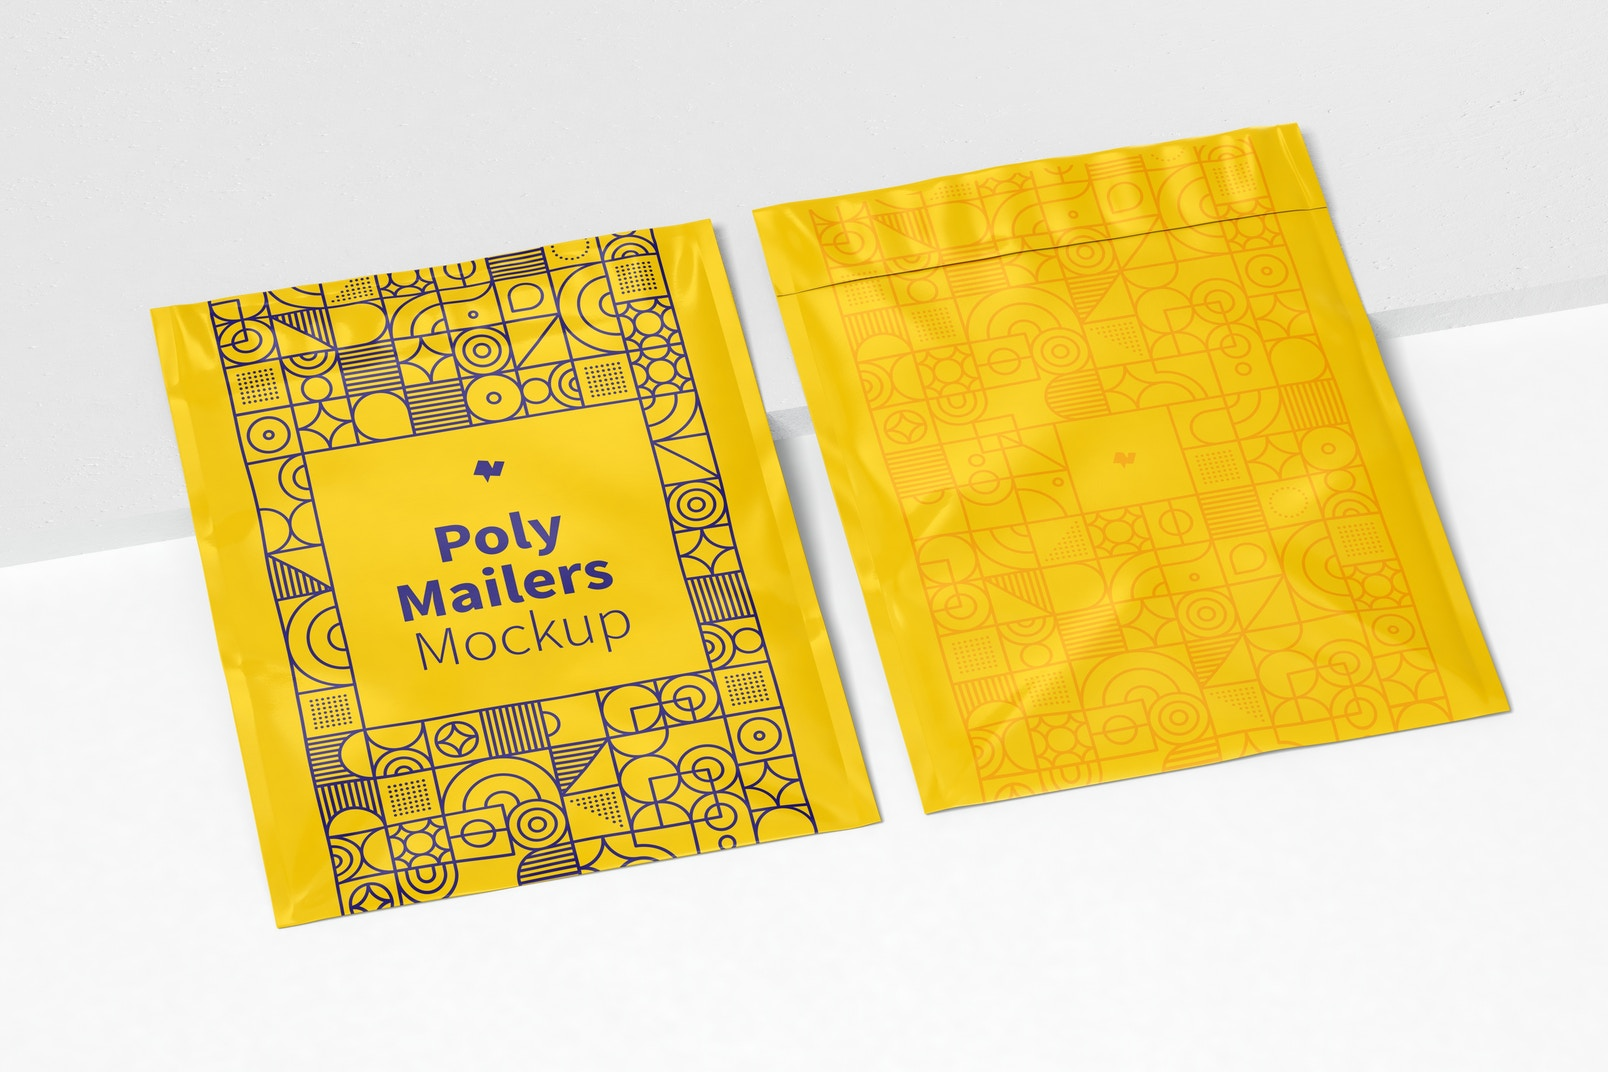 Poly Mailers Mockup, Perspective View